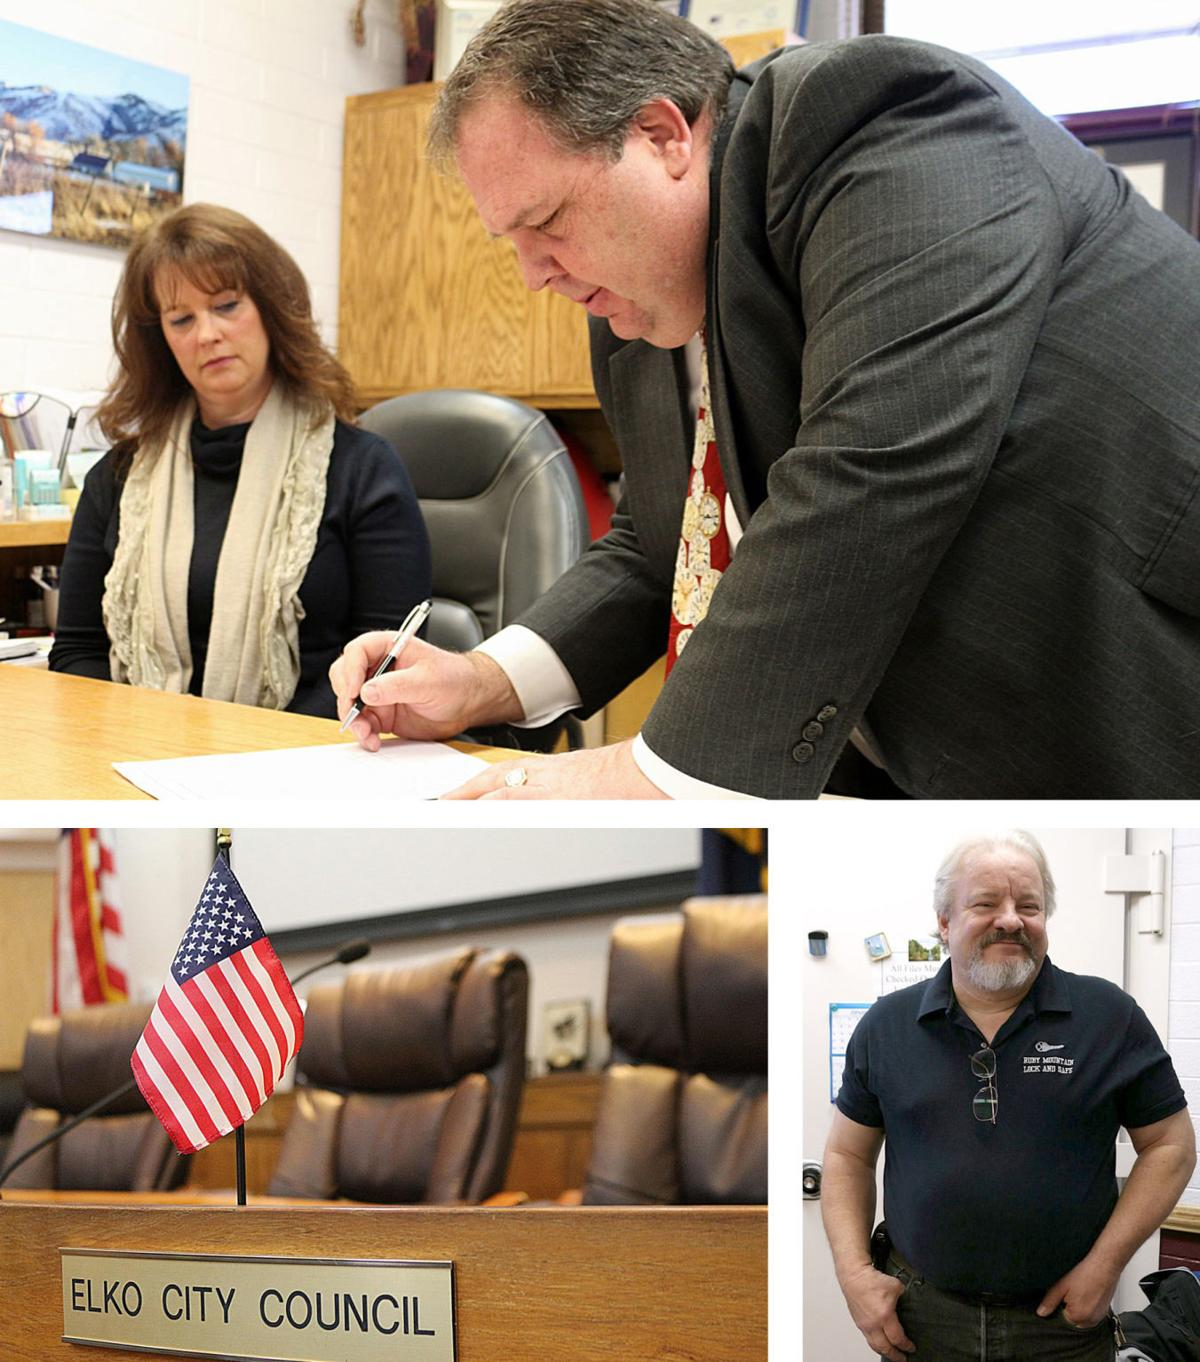 Elko City Council candidates